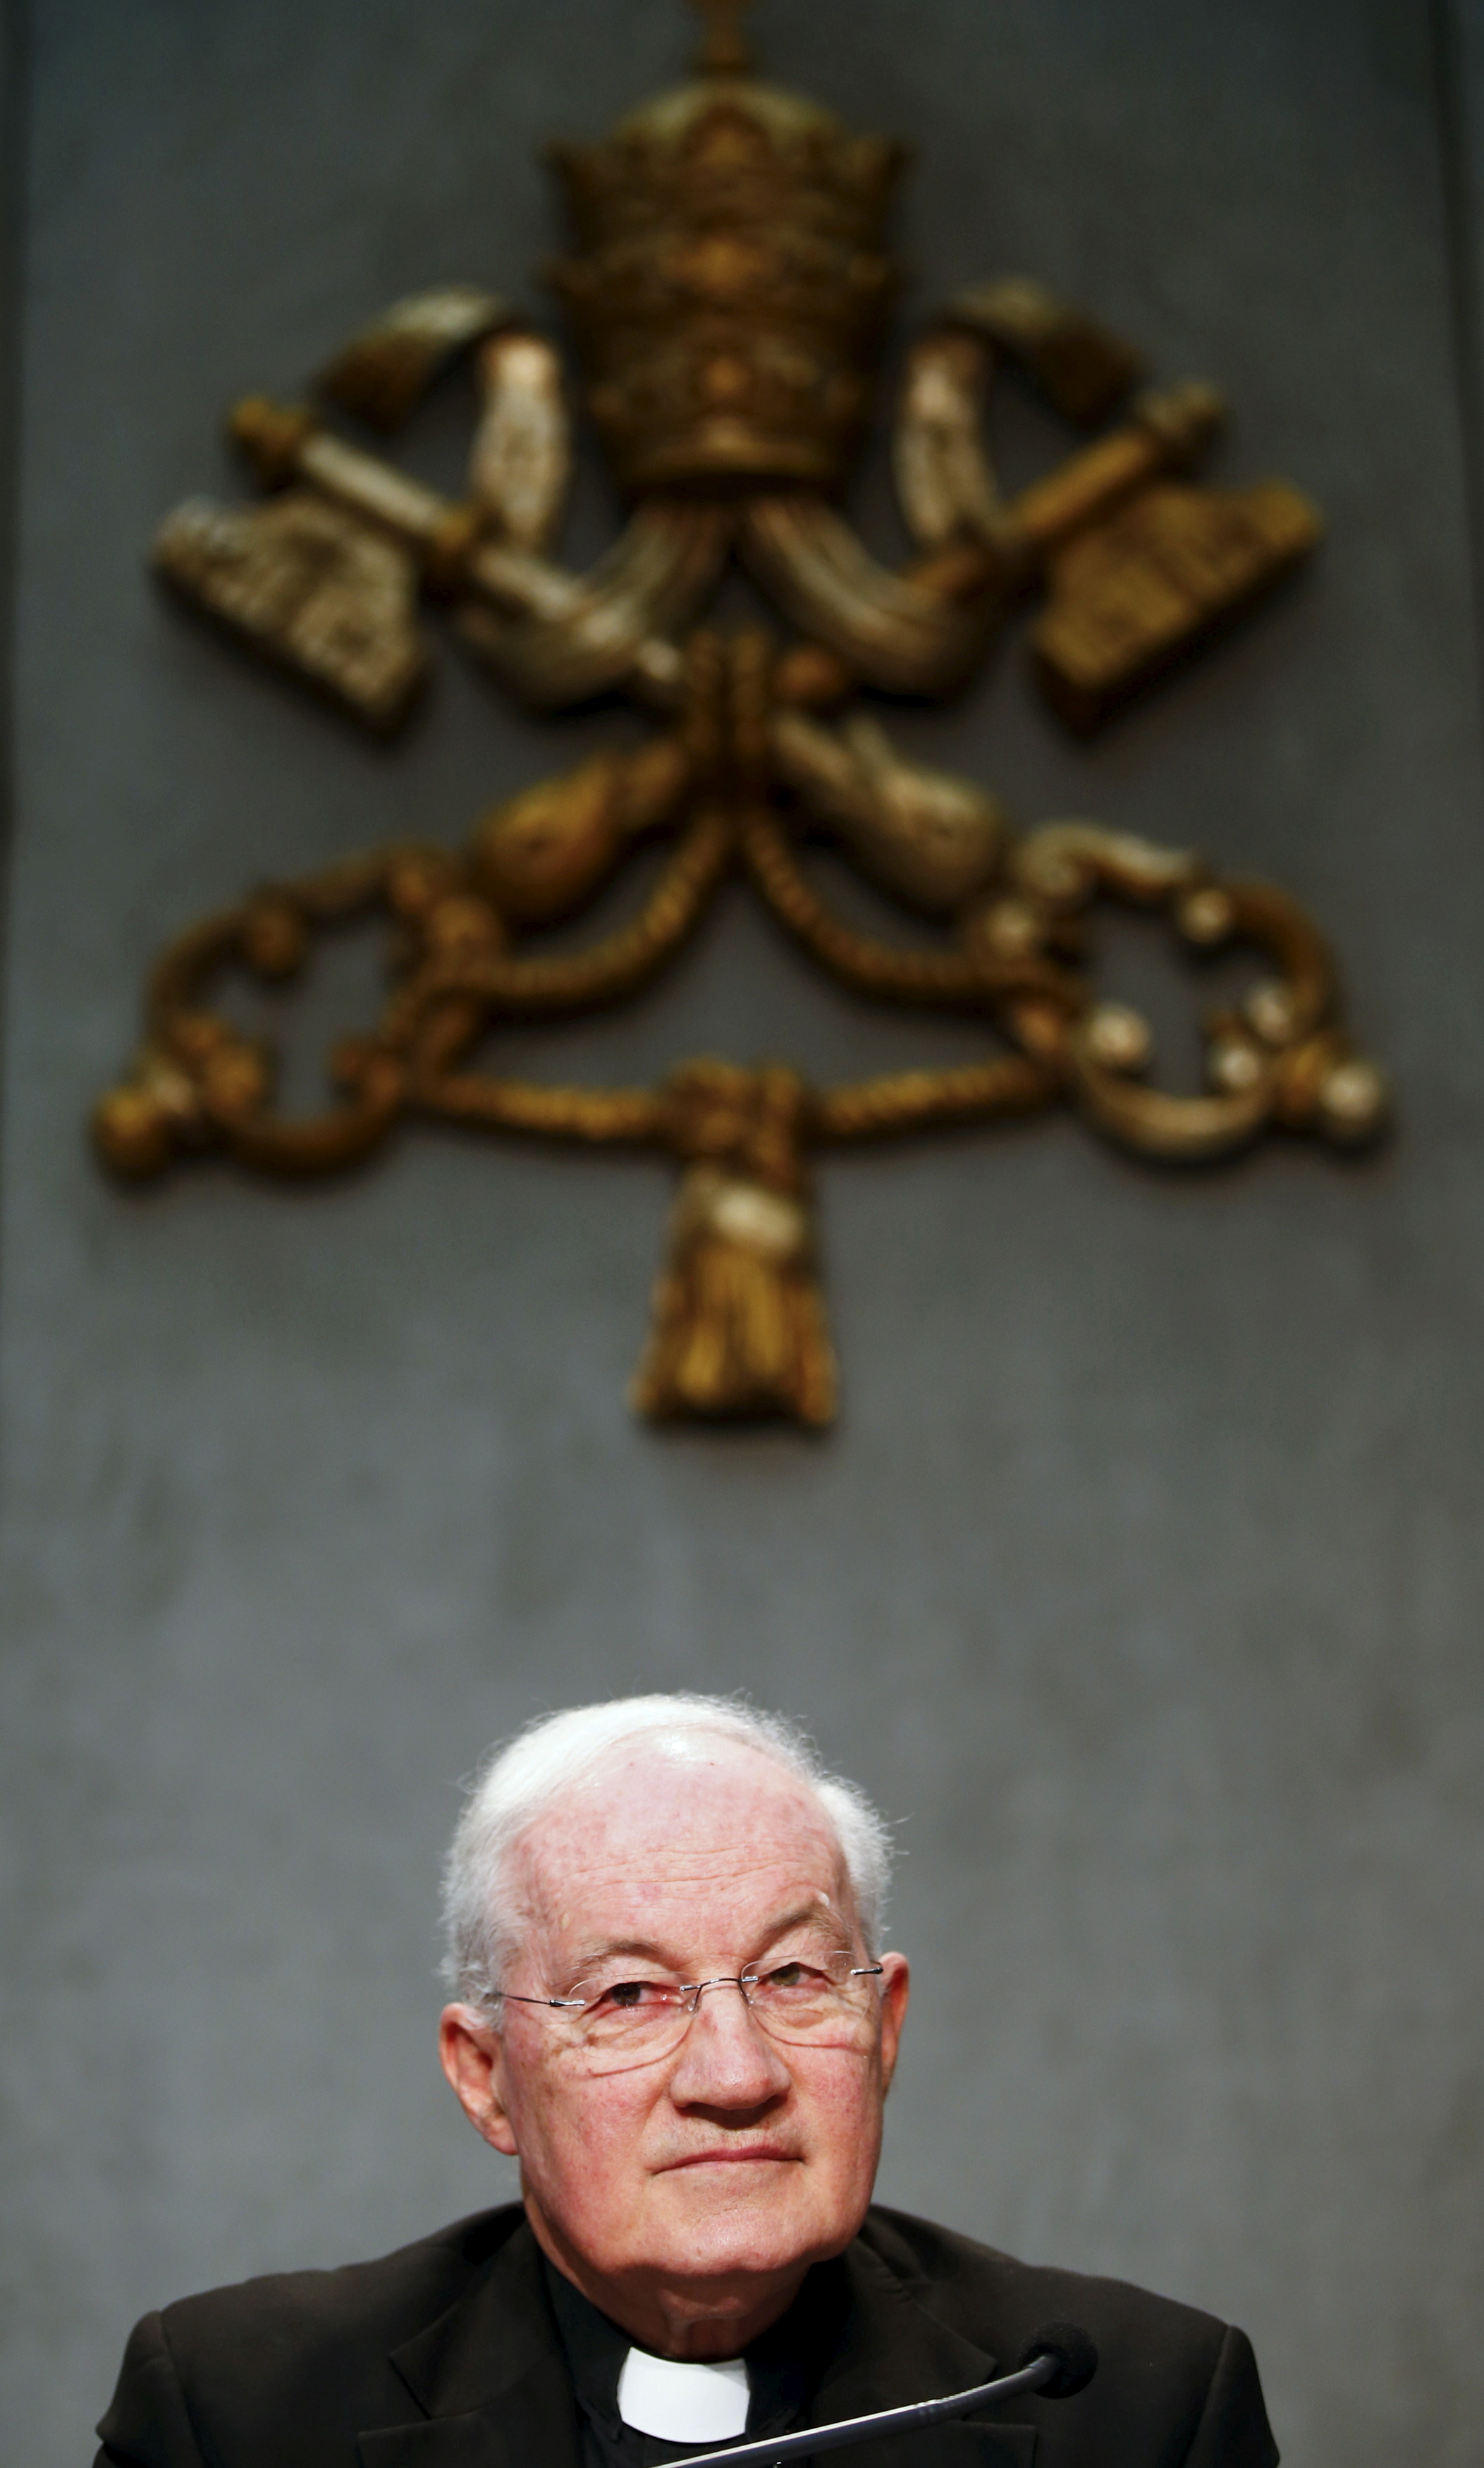 Cardinal Marc Ouellet attends a news conference to announce the canonisation of Fray Junipero Serra at the Vatican April 20, 2015. . REUTERS/Tony Gentile/File Photo